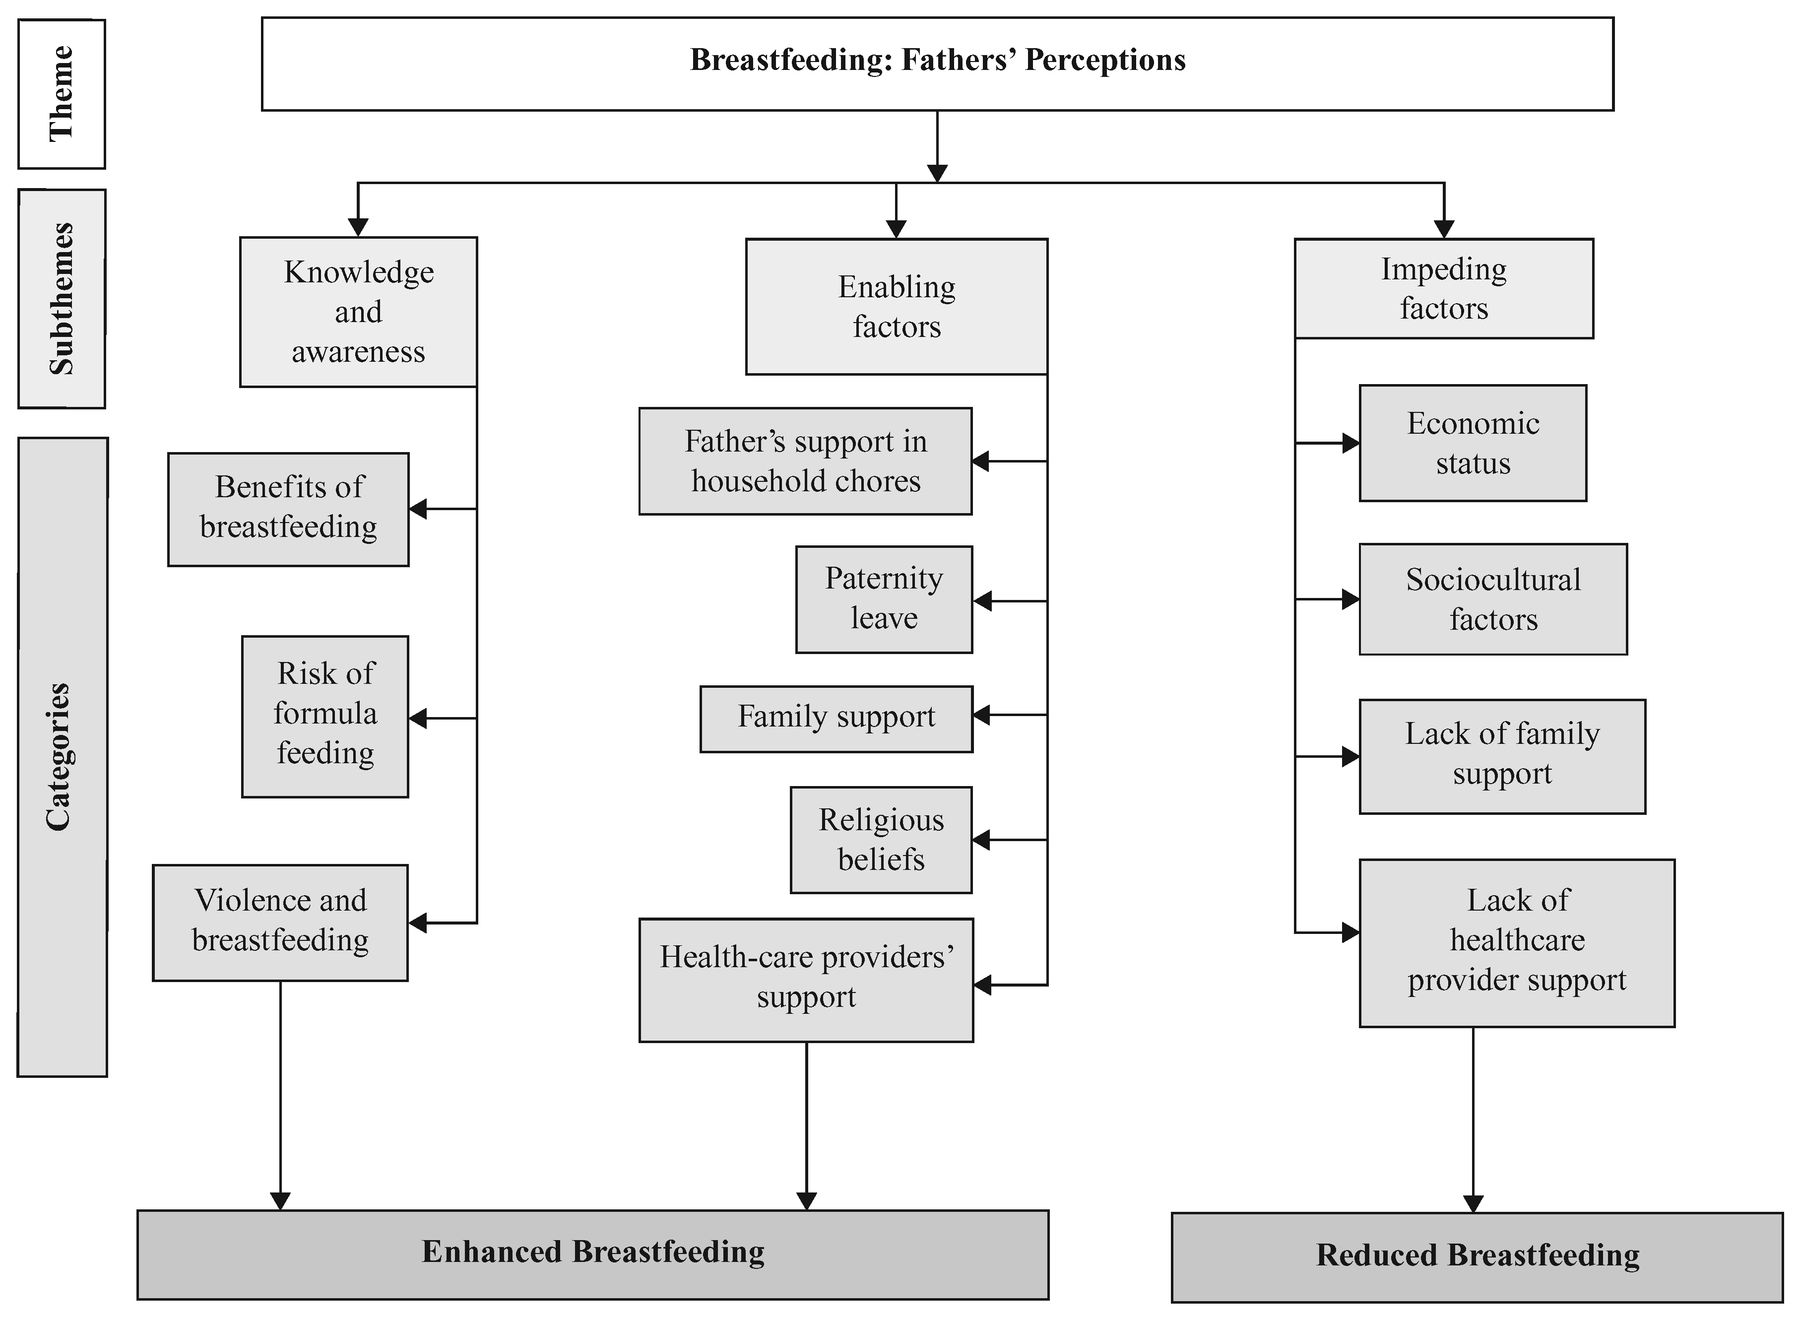 Exploring Fathers' Role in Breastfeeding Practices in the